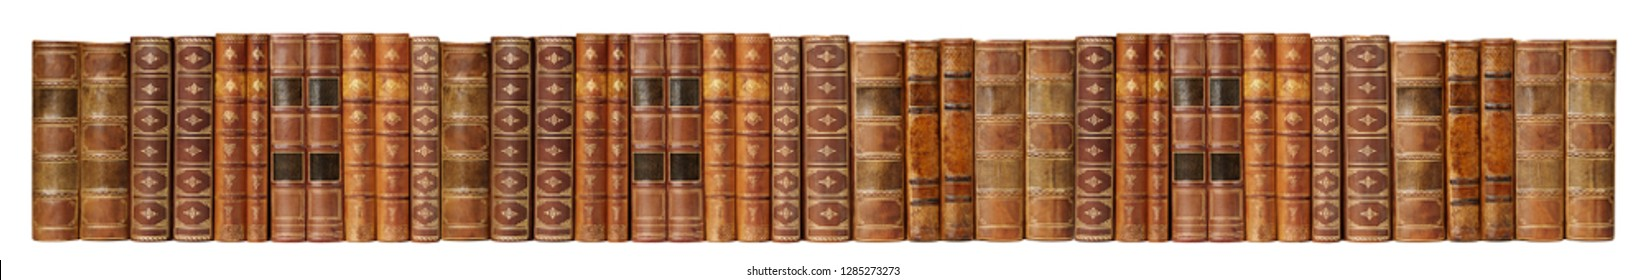 Long banner of row of antique books in a leather hardcover isolated on white background